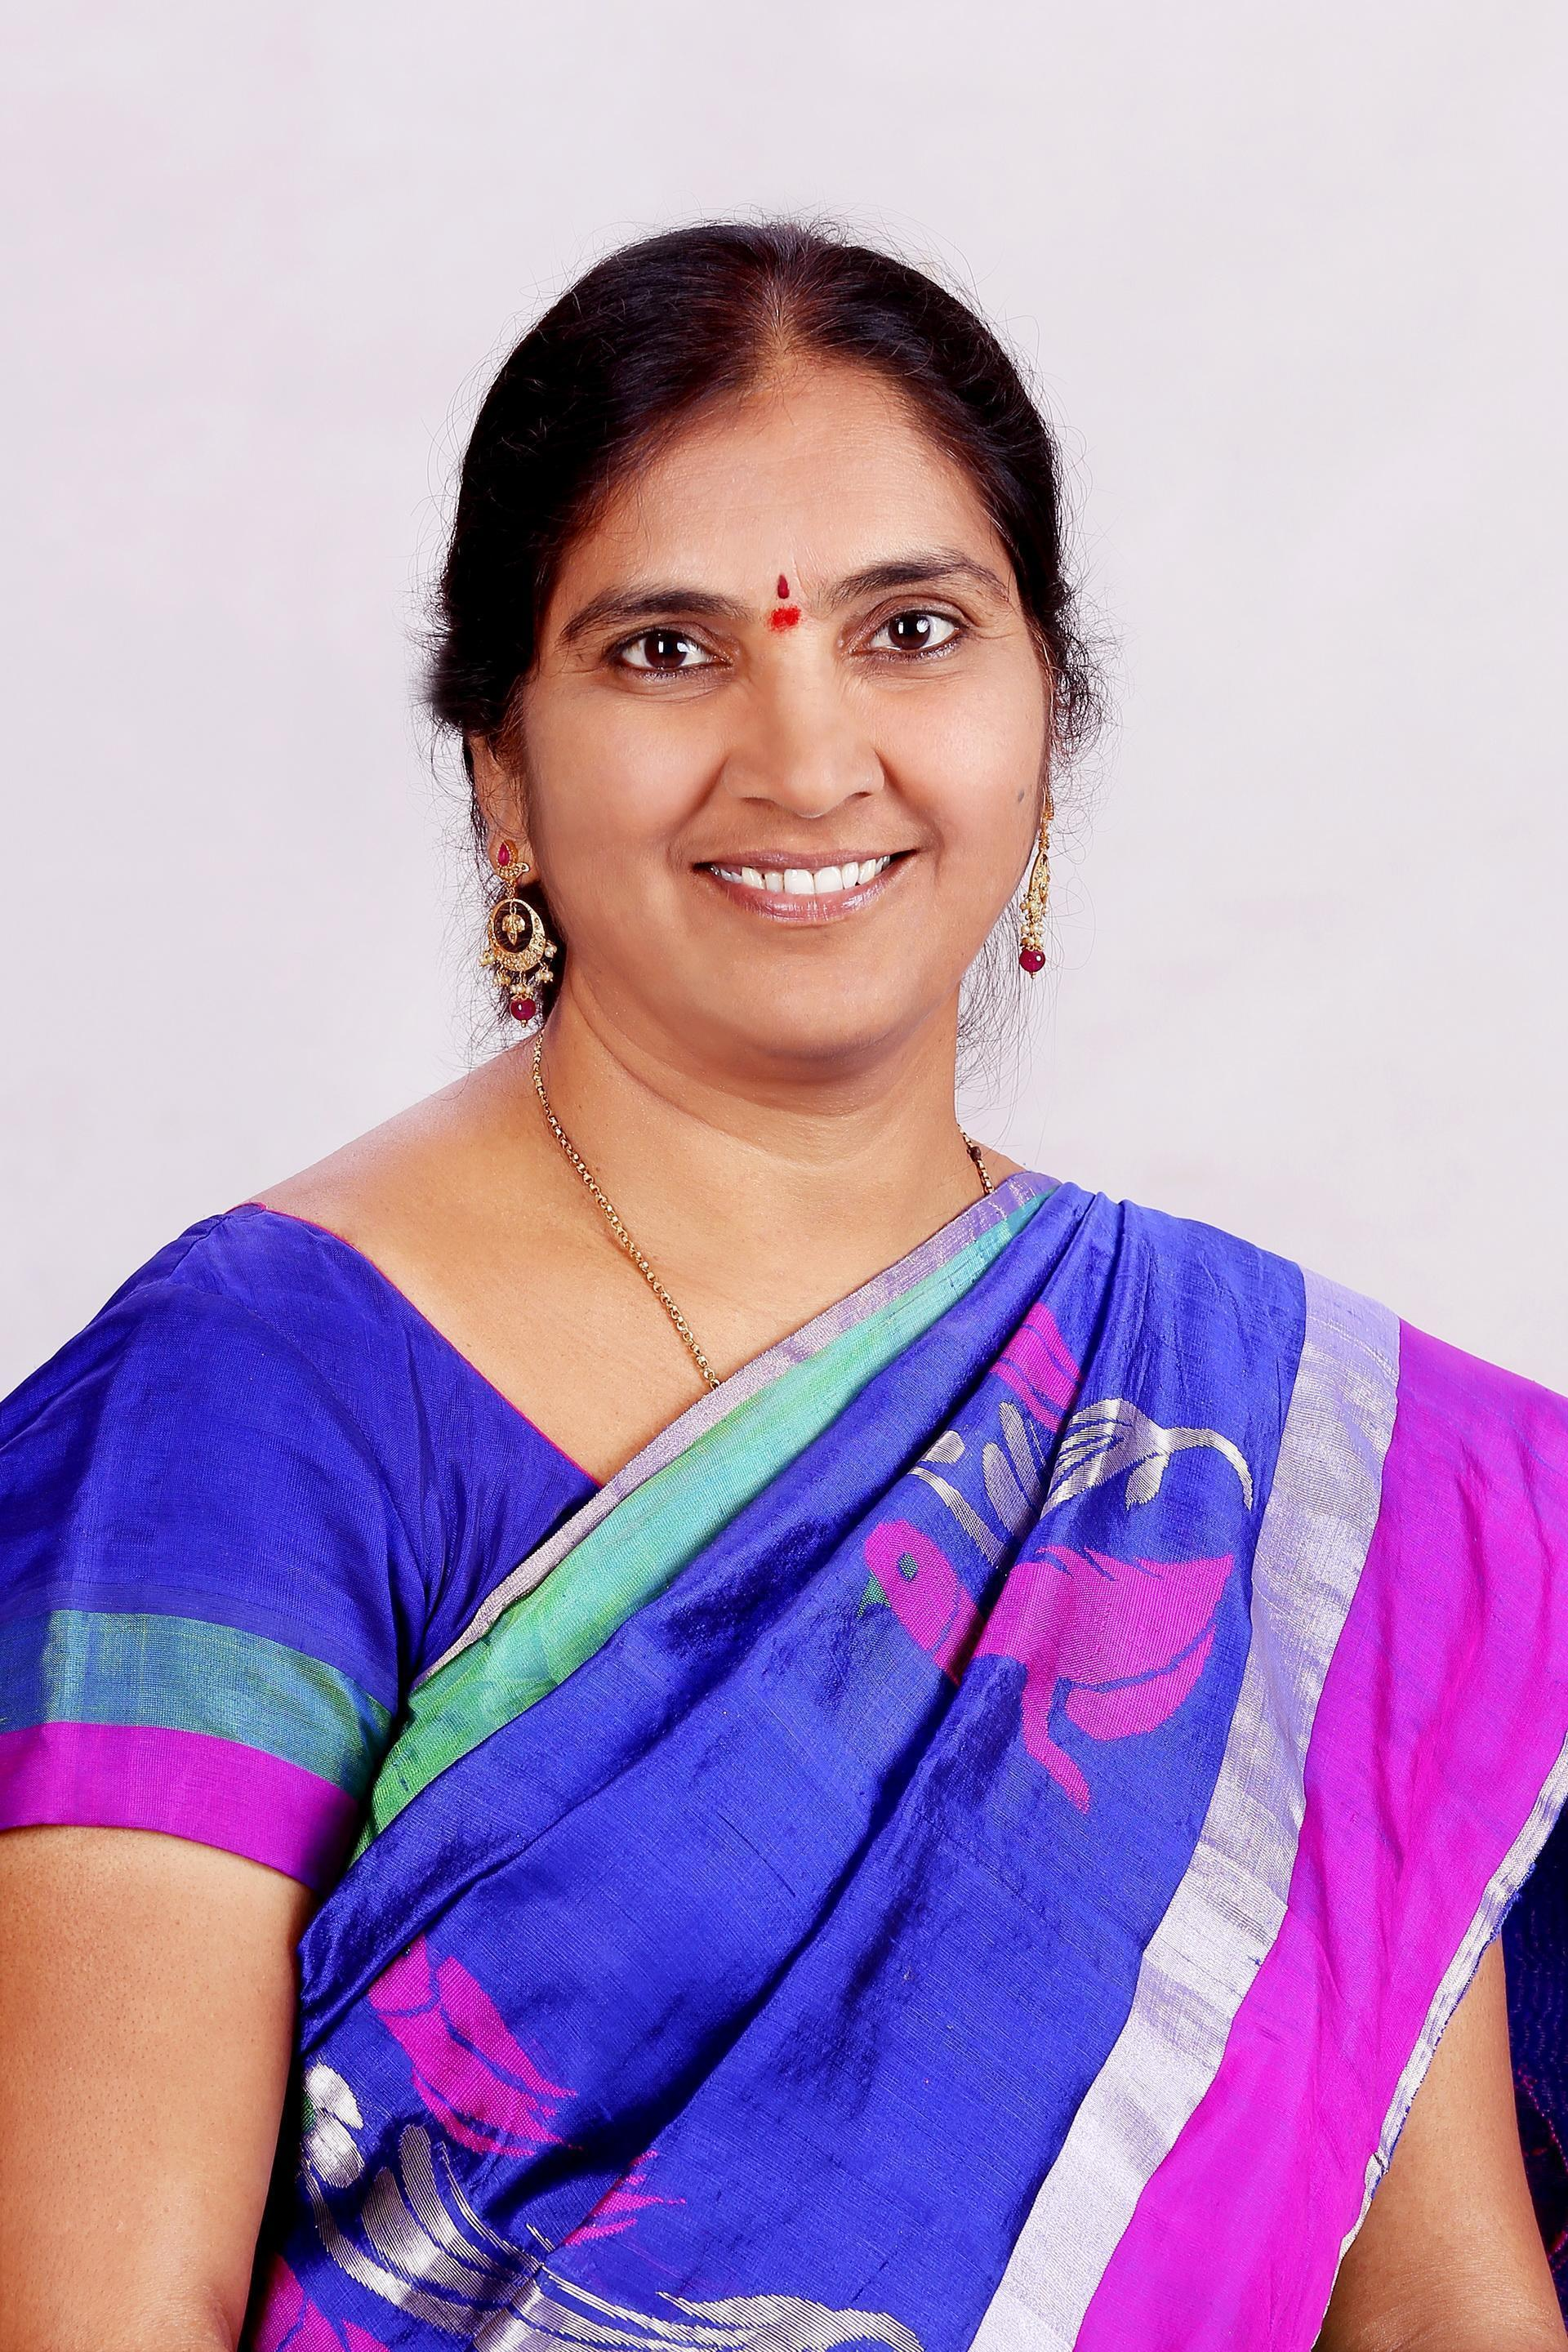 SMT. PADMA DEVENDER REDDY M